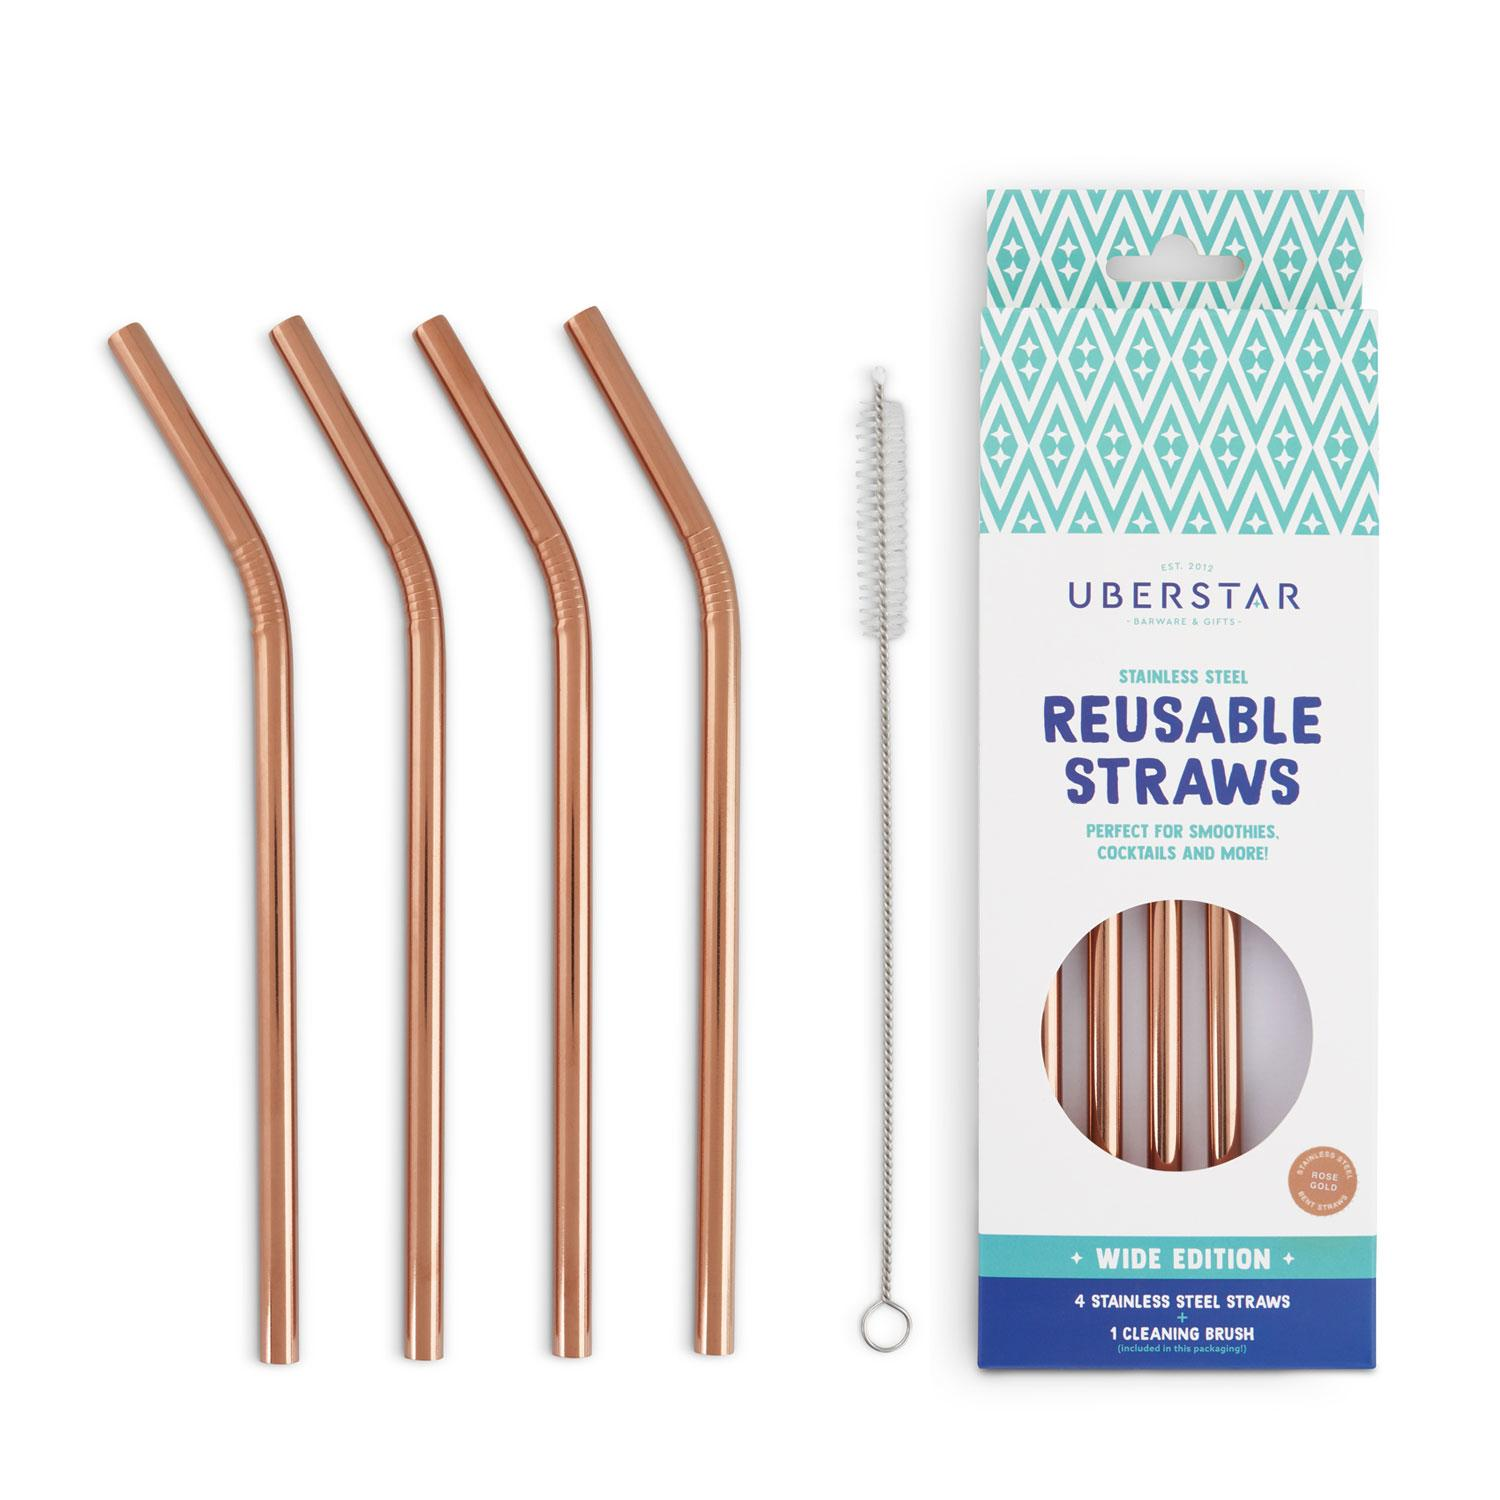 Uberstar Reusable Straws (4 Pack) - Rose Gold